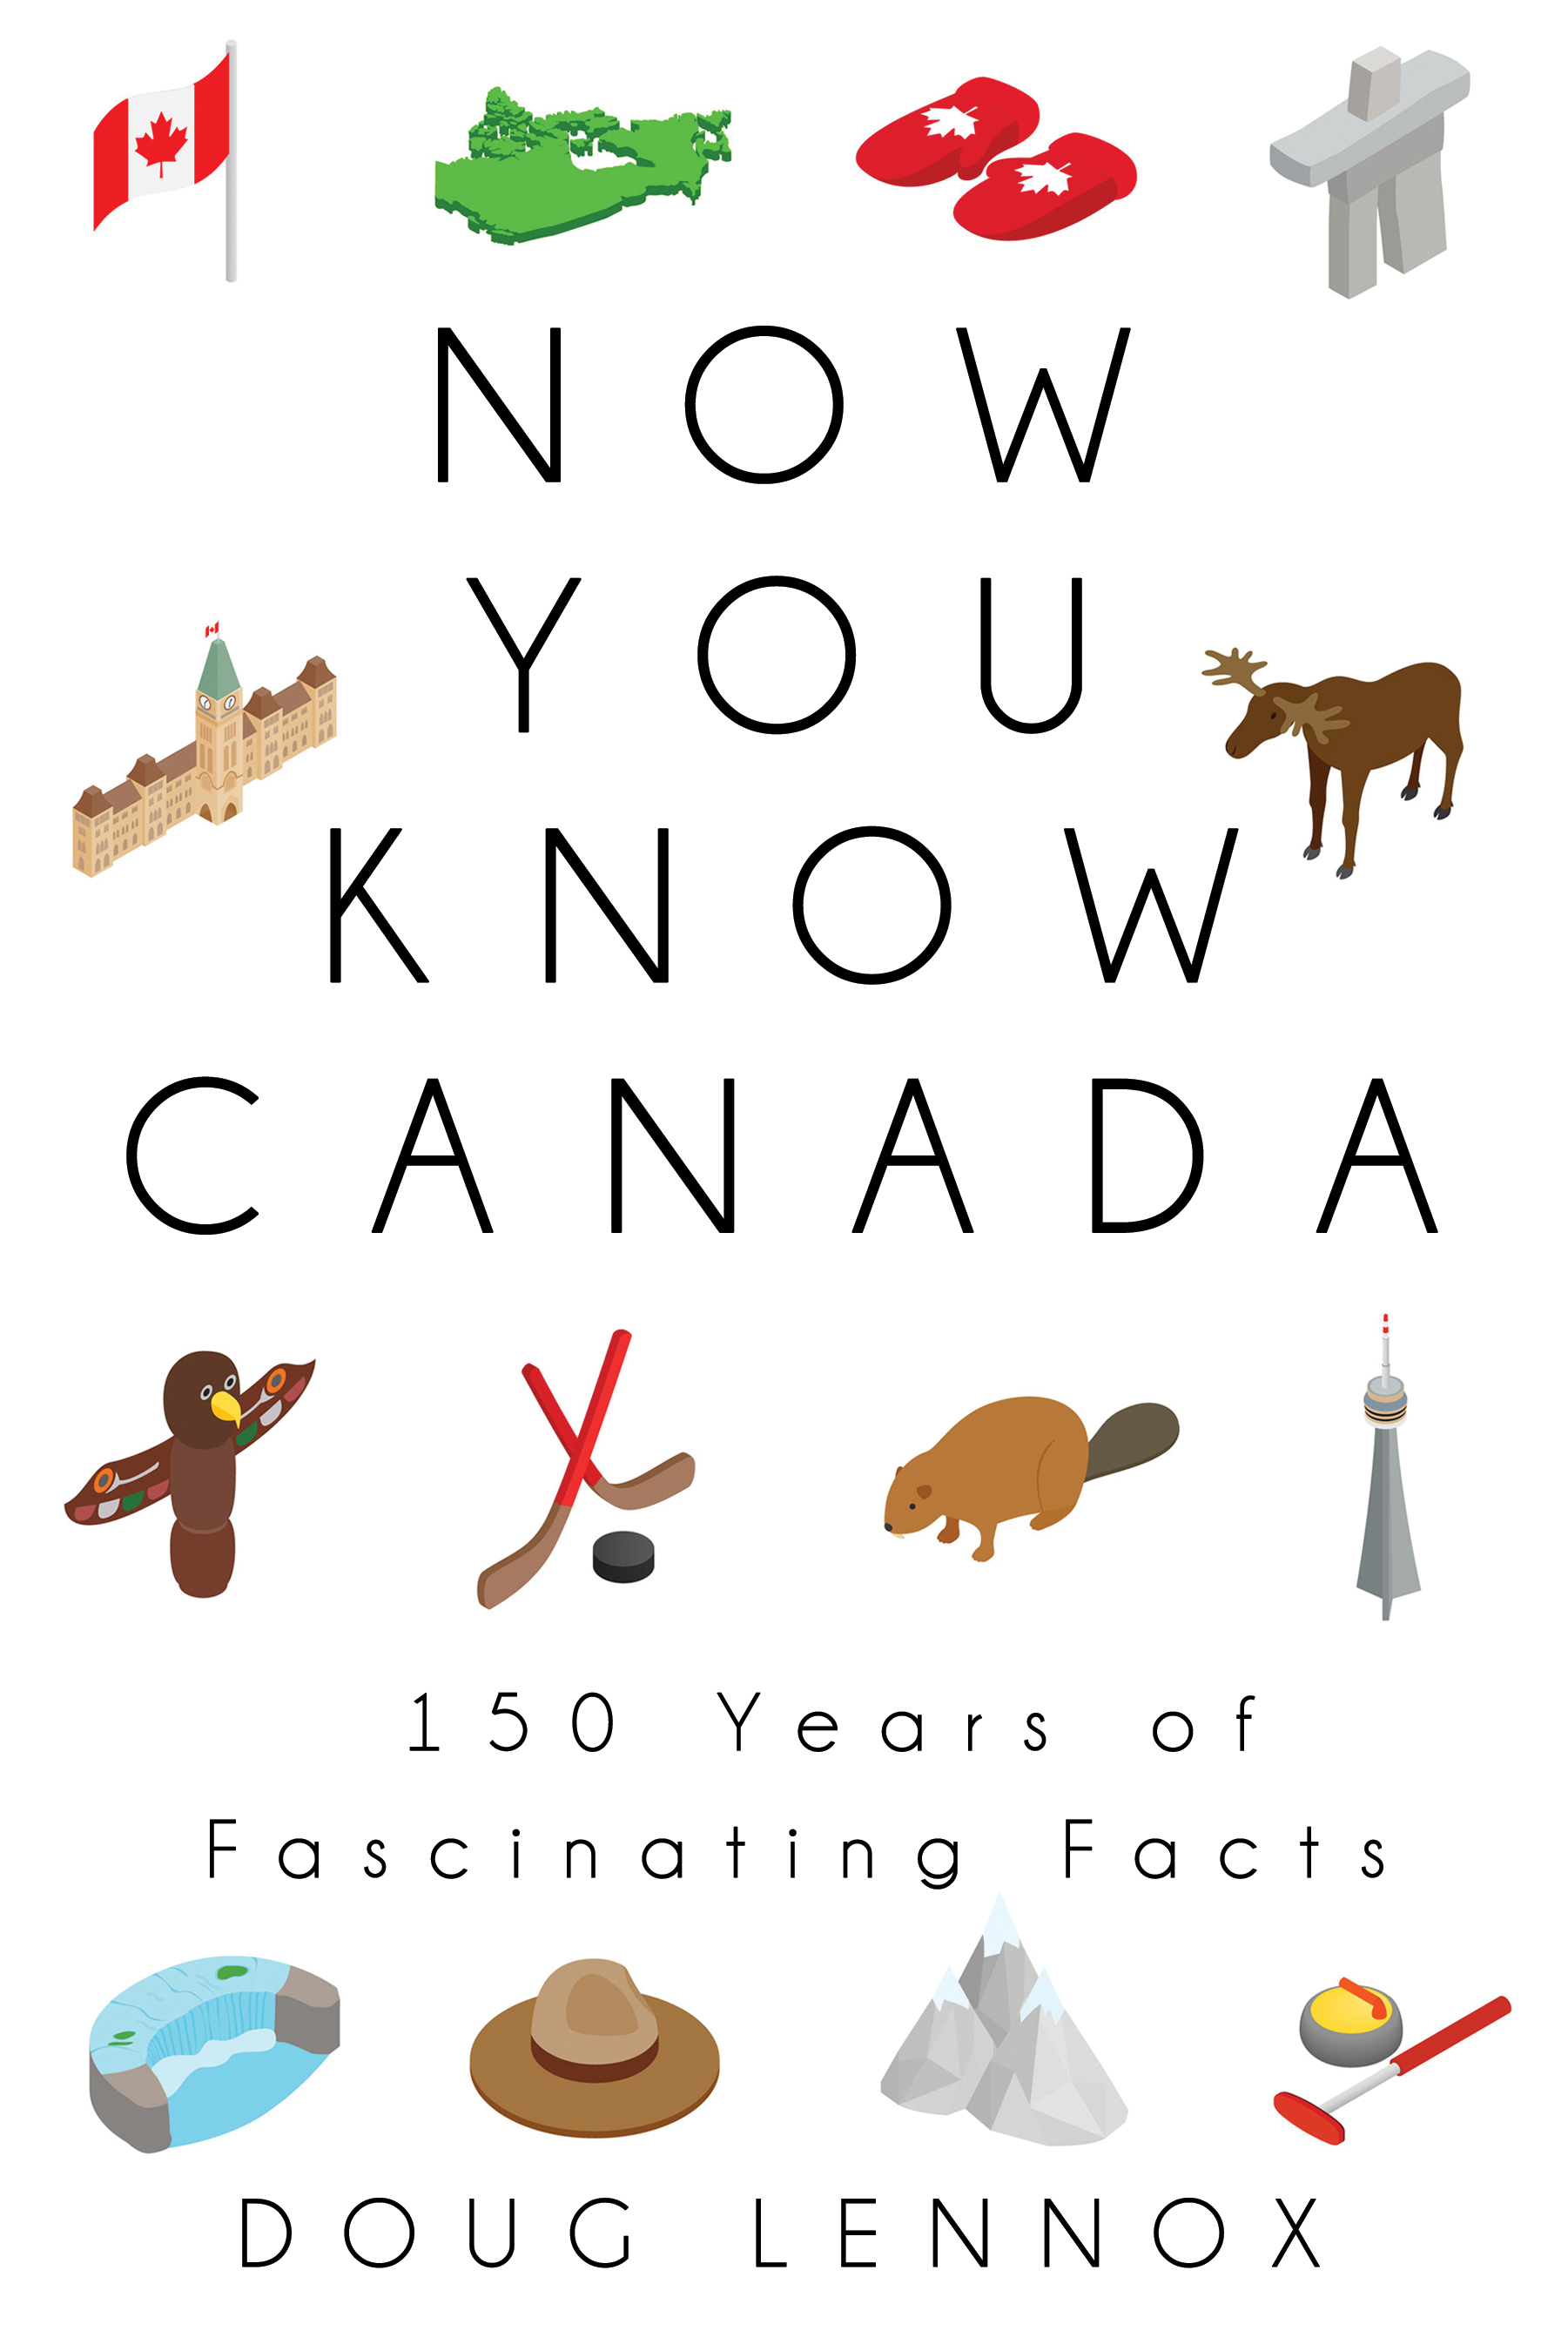 Now You Know Canada - 150 Years of Fascinating Facts